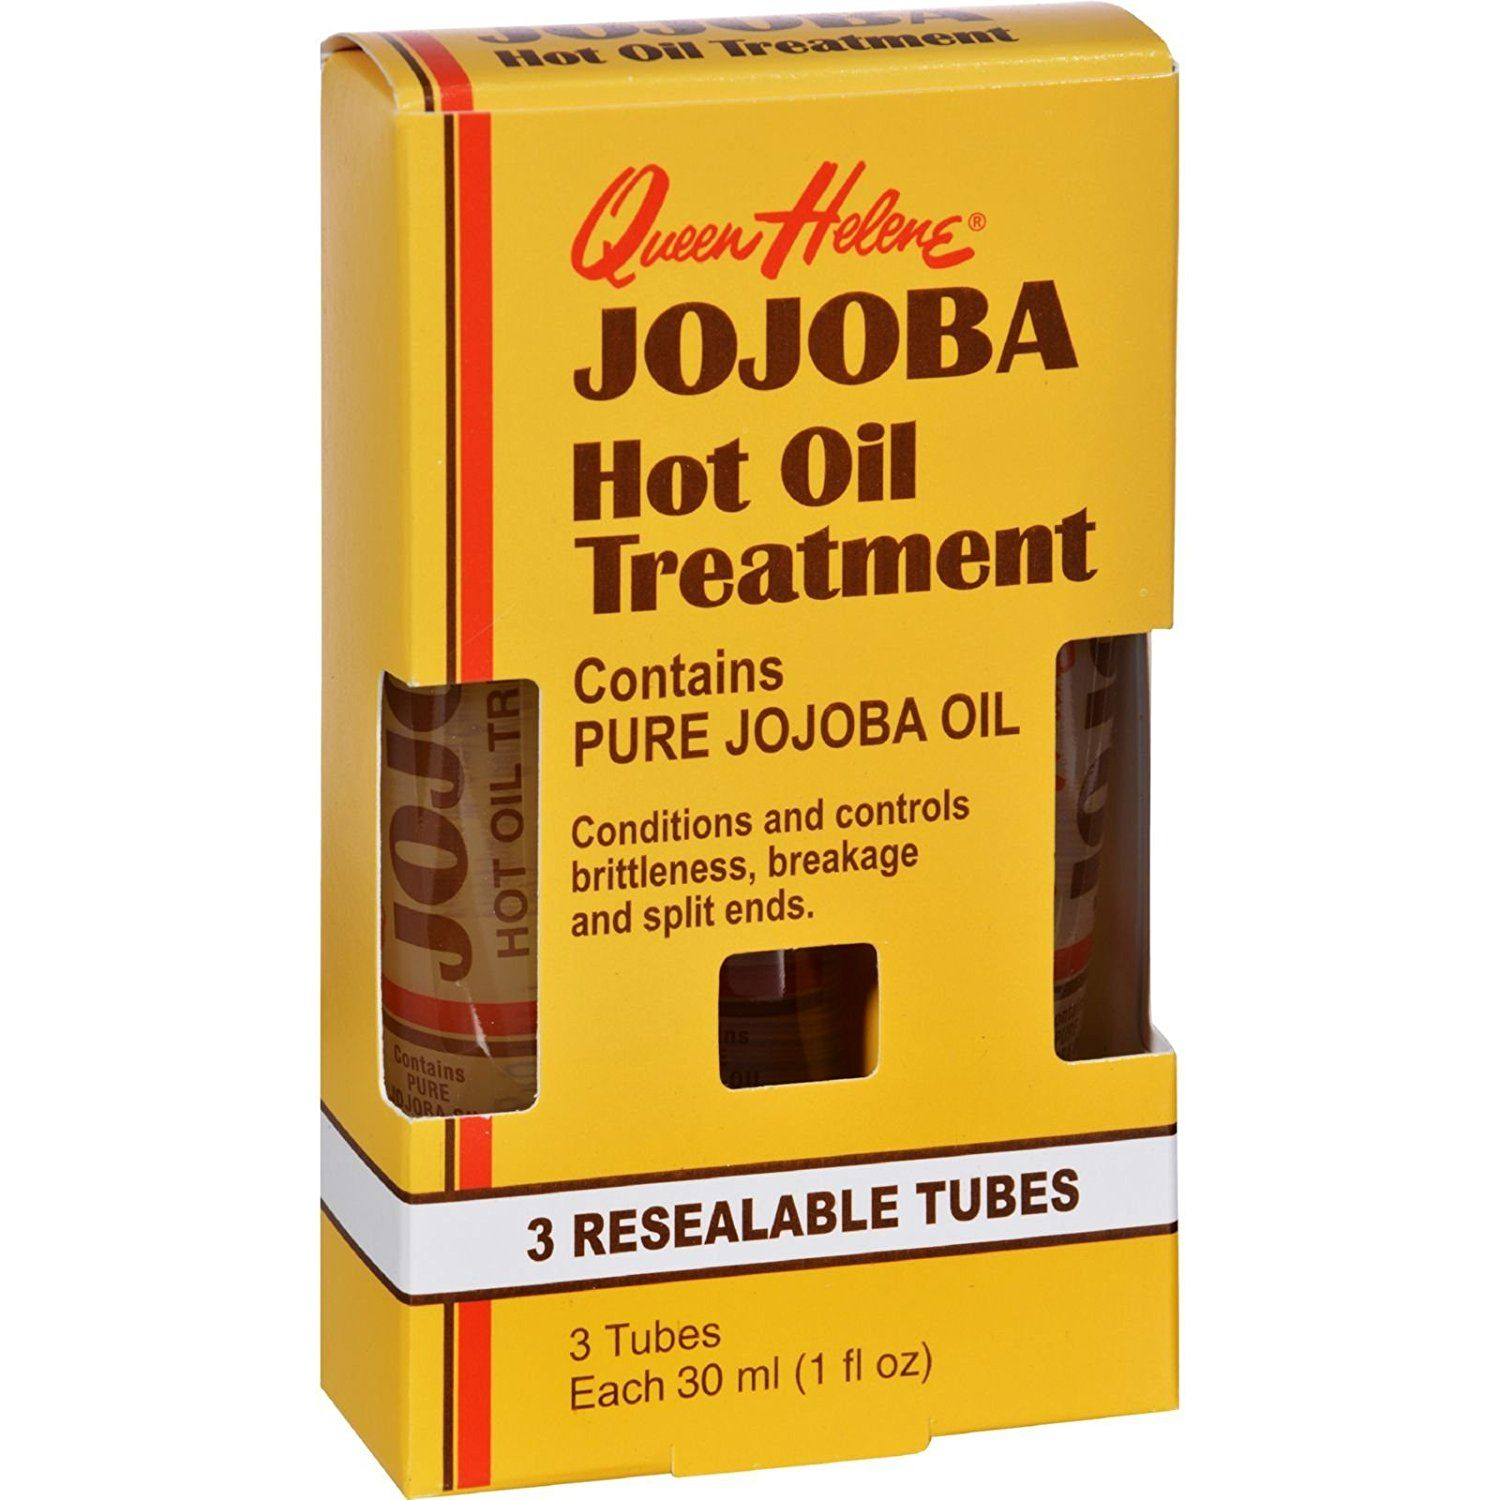 Queen Helene Jojoba Hot Oil Treatment 1 Fl Oz Revitalize Damaged Hair And Re